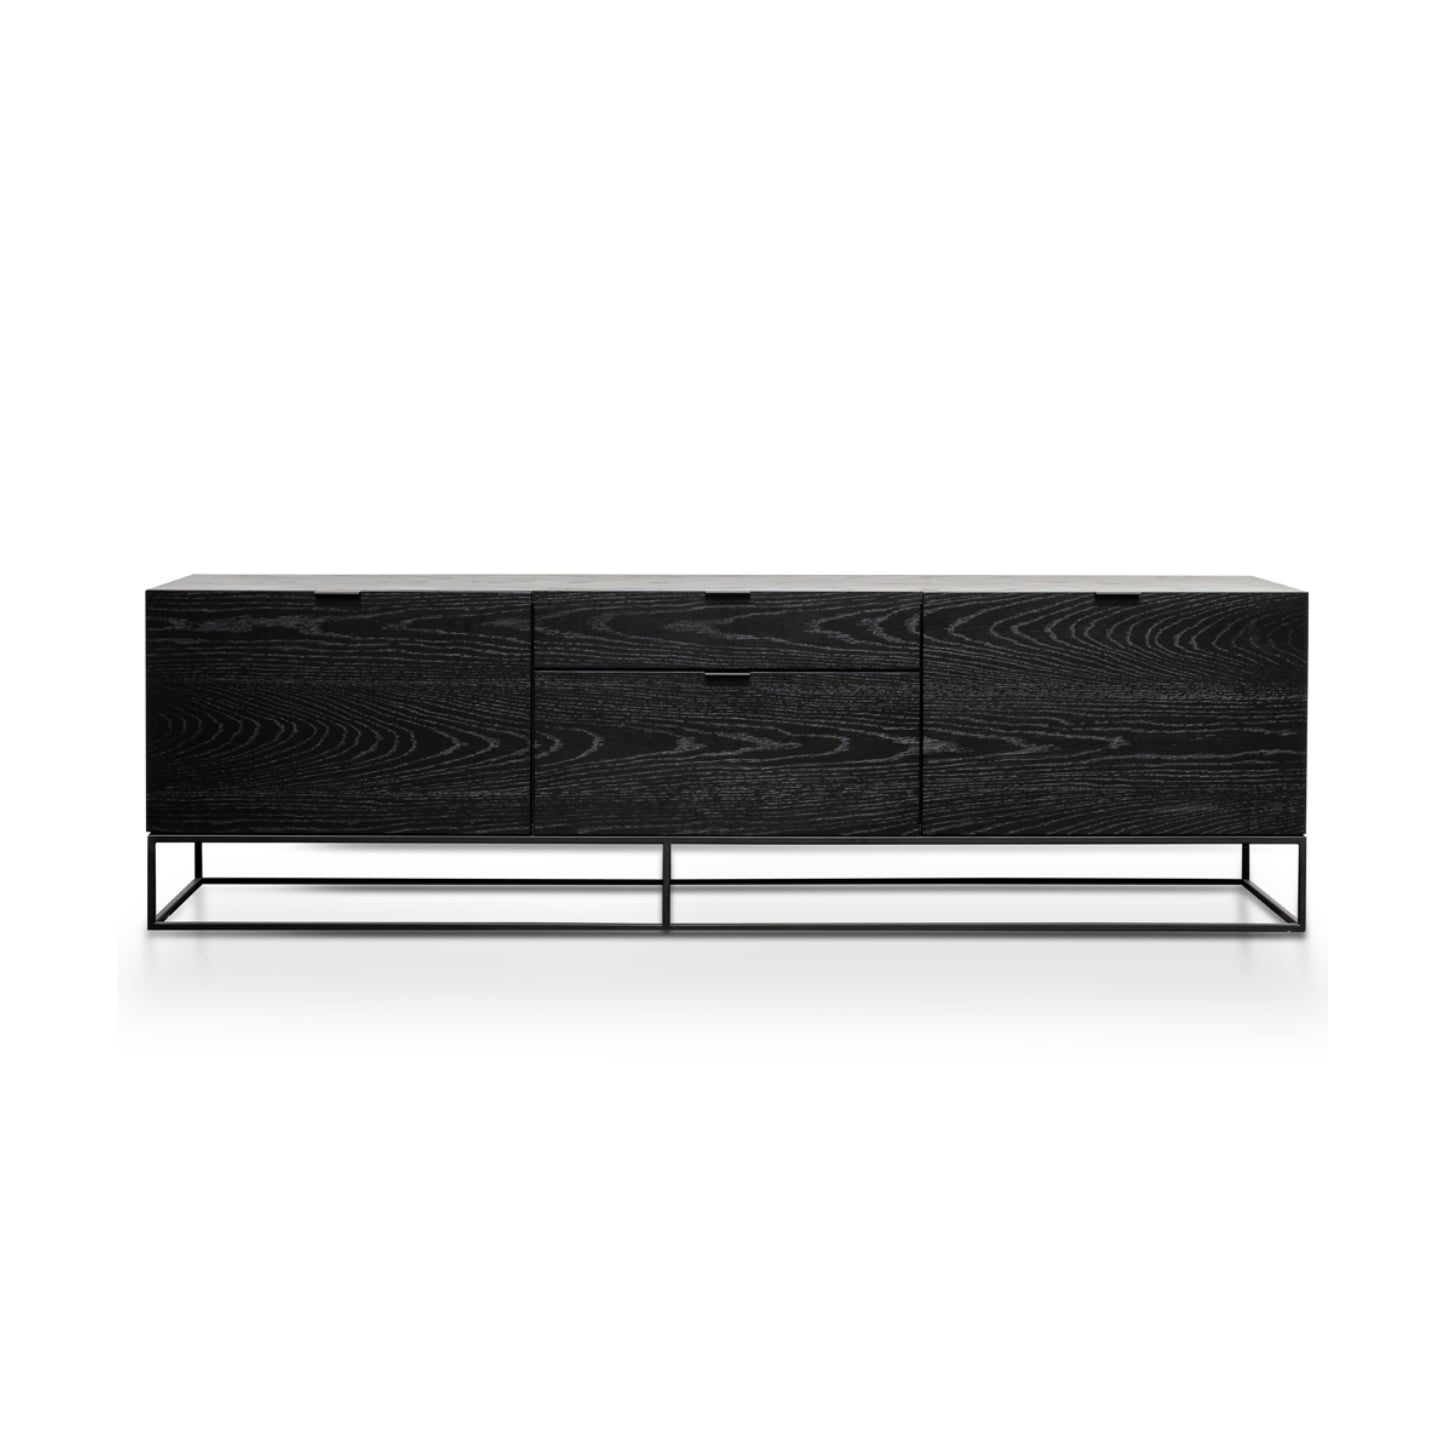 Tom Entertainment Cabinet | Black Oak